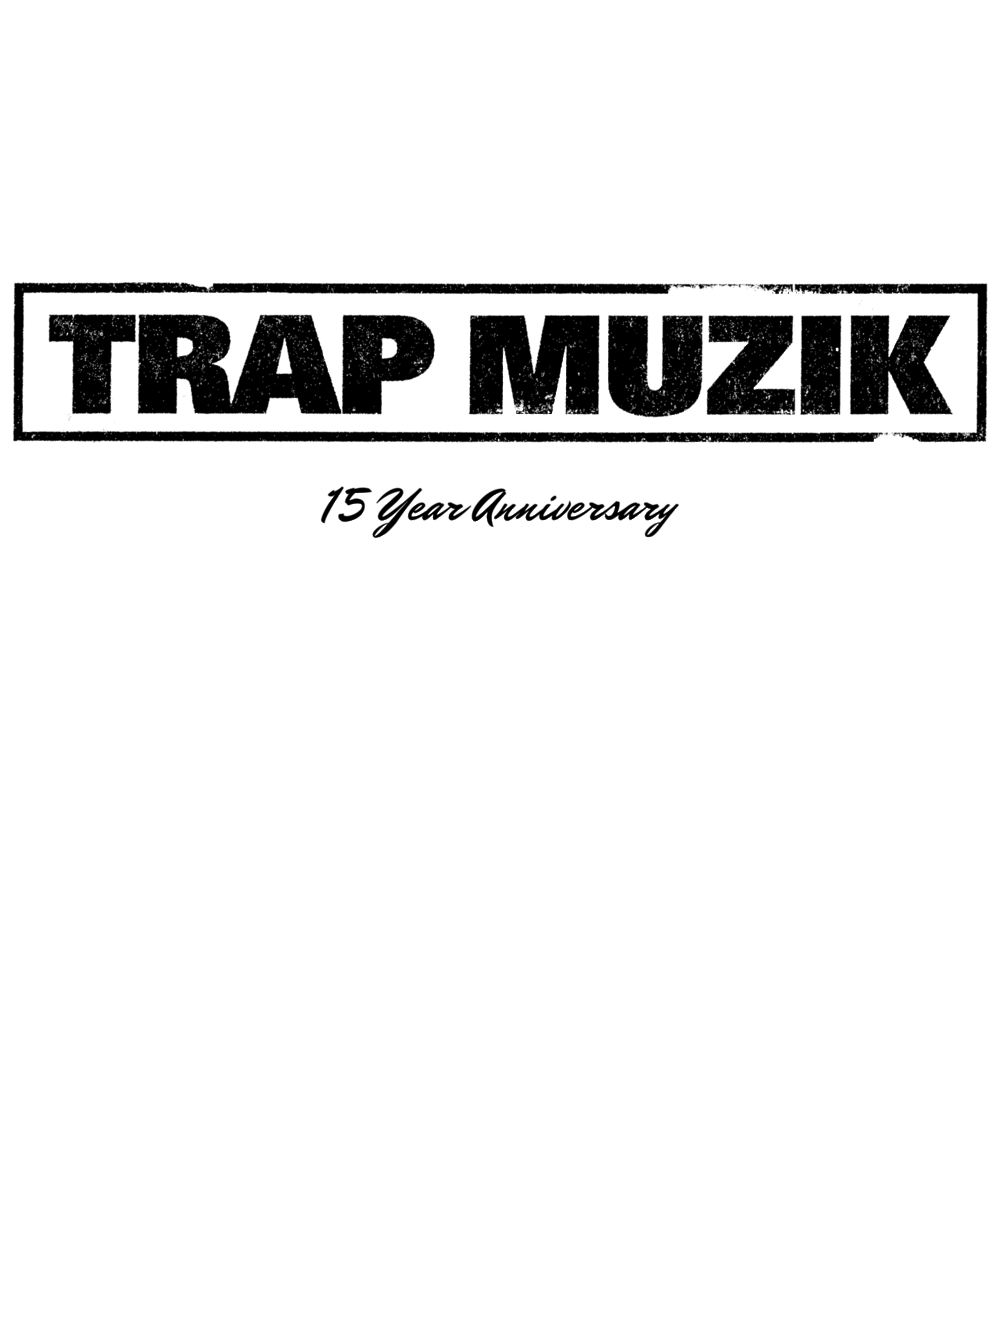 "TRAP MUZIK is the second studio album by TIP ""T.I"" HARRIS. It was released on August 19, 2003, through Atlantic Records and his newly founded record label Grand Hustle Records."